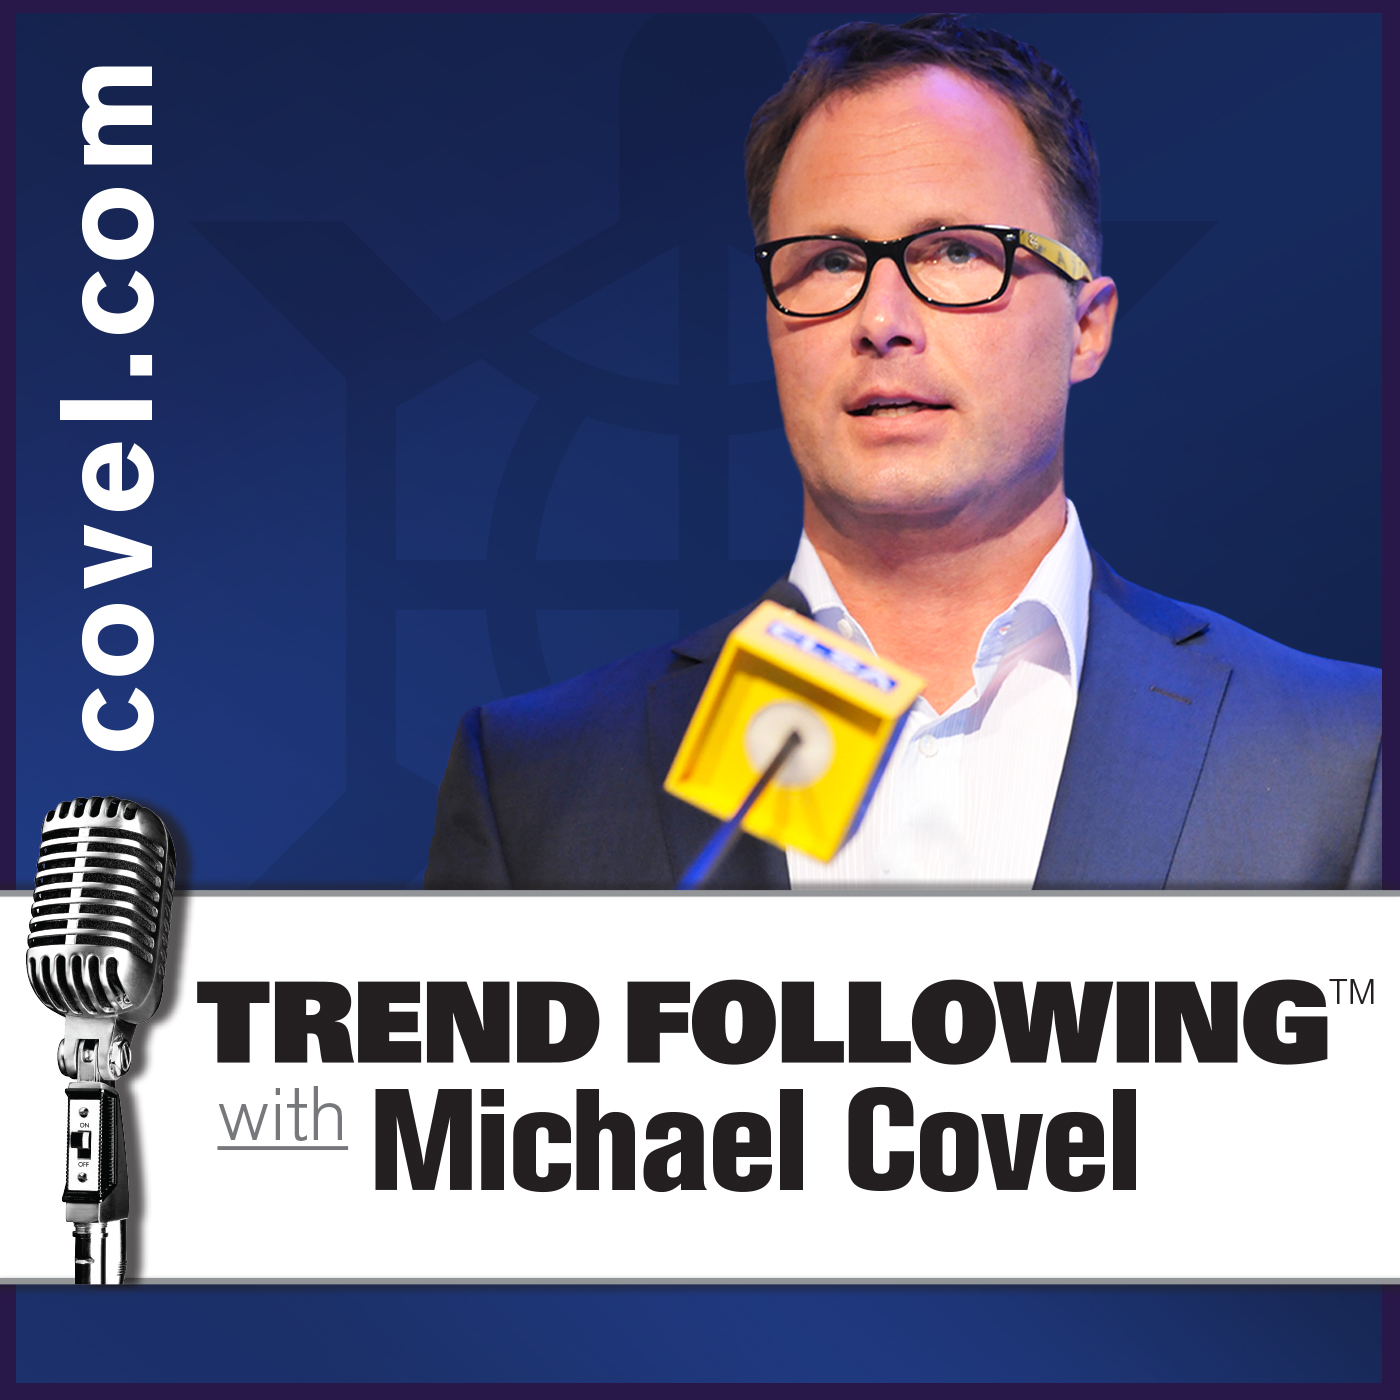 Ep. 469: Laura Roeder Interview with Michael Covel on Trend Following Radio